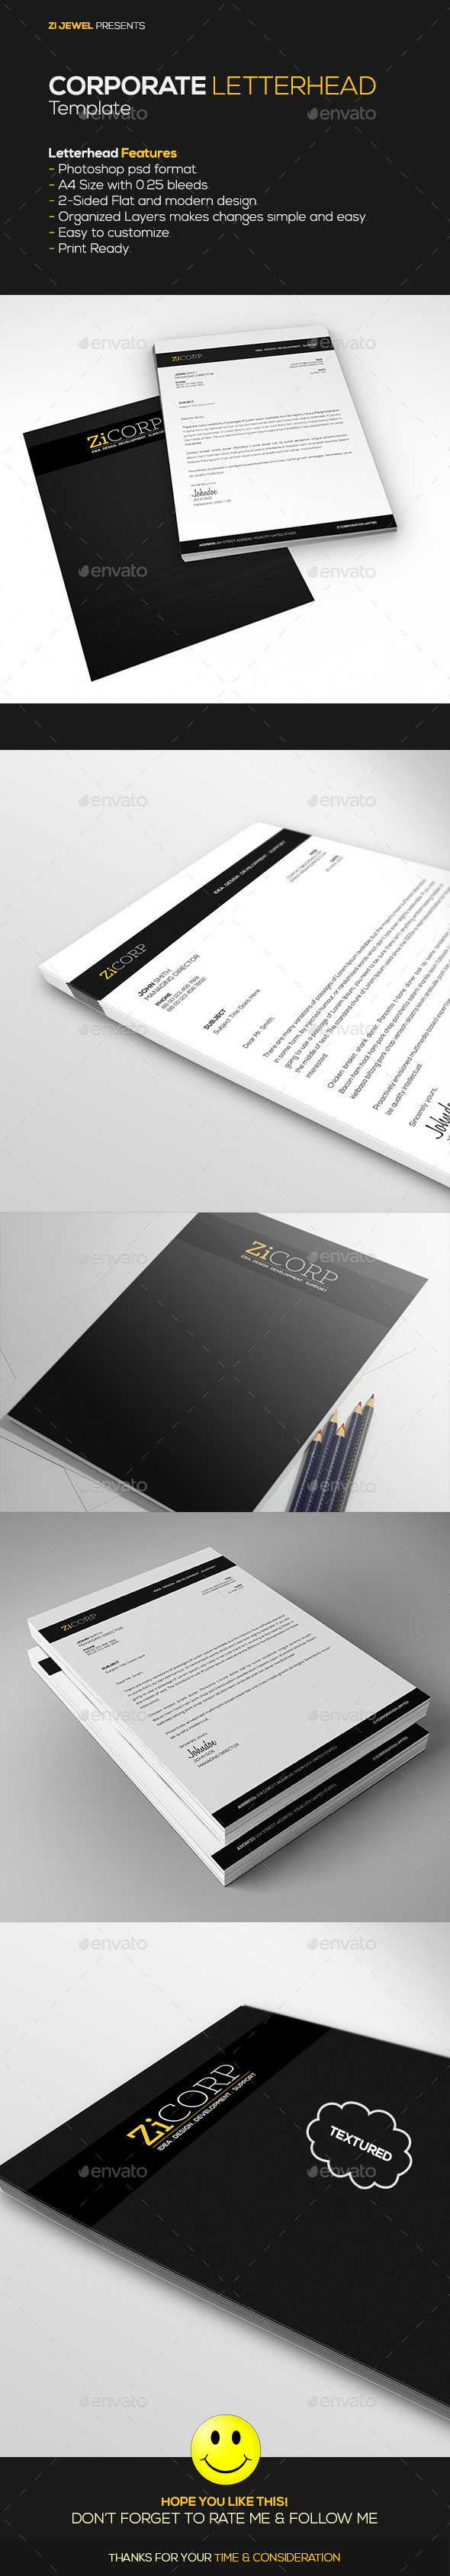 GraphicRiver Corporate Letterhead 11024480